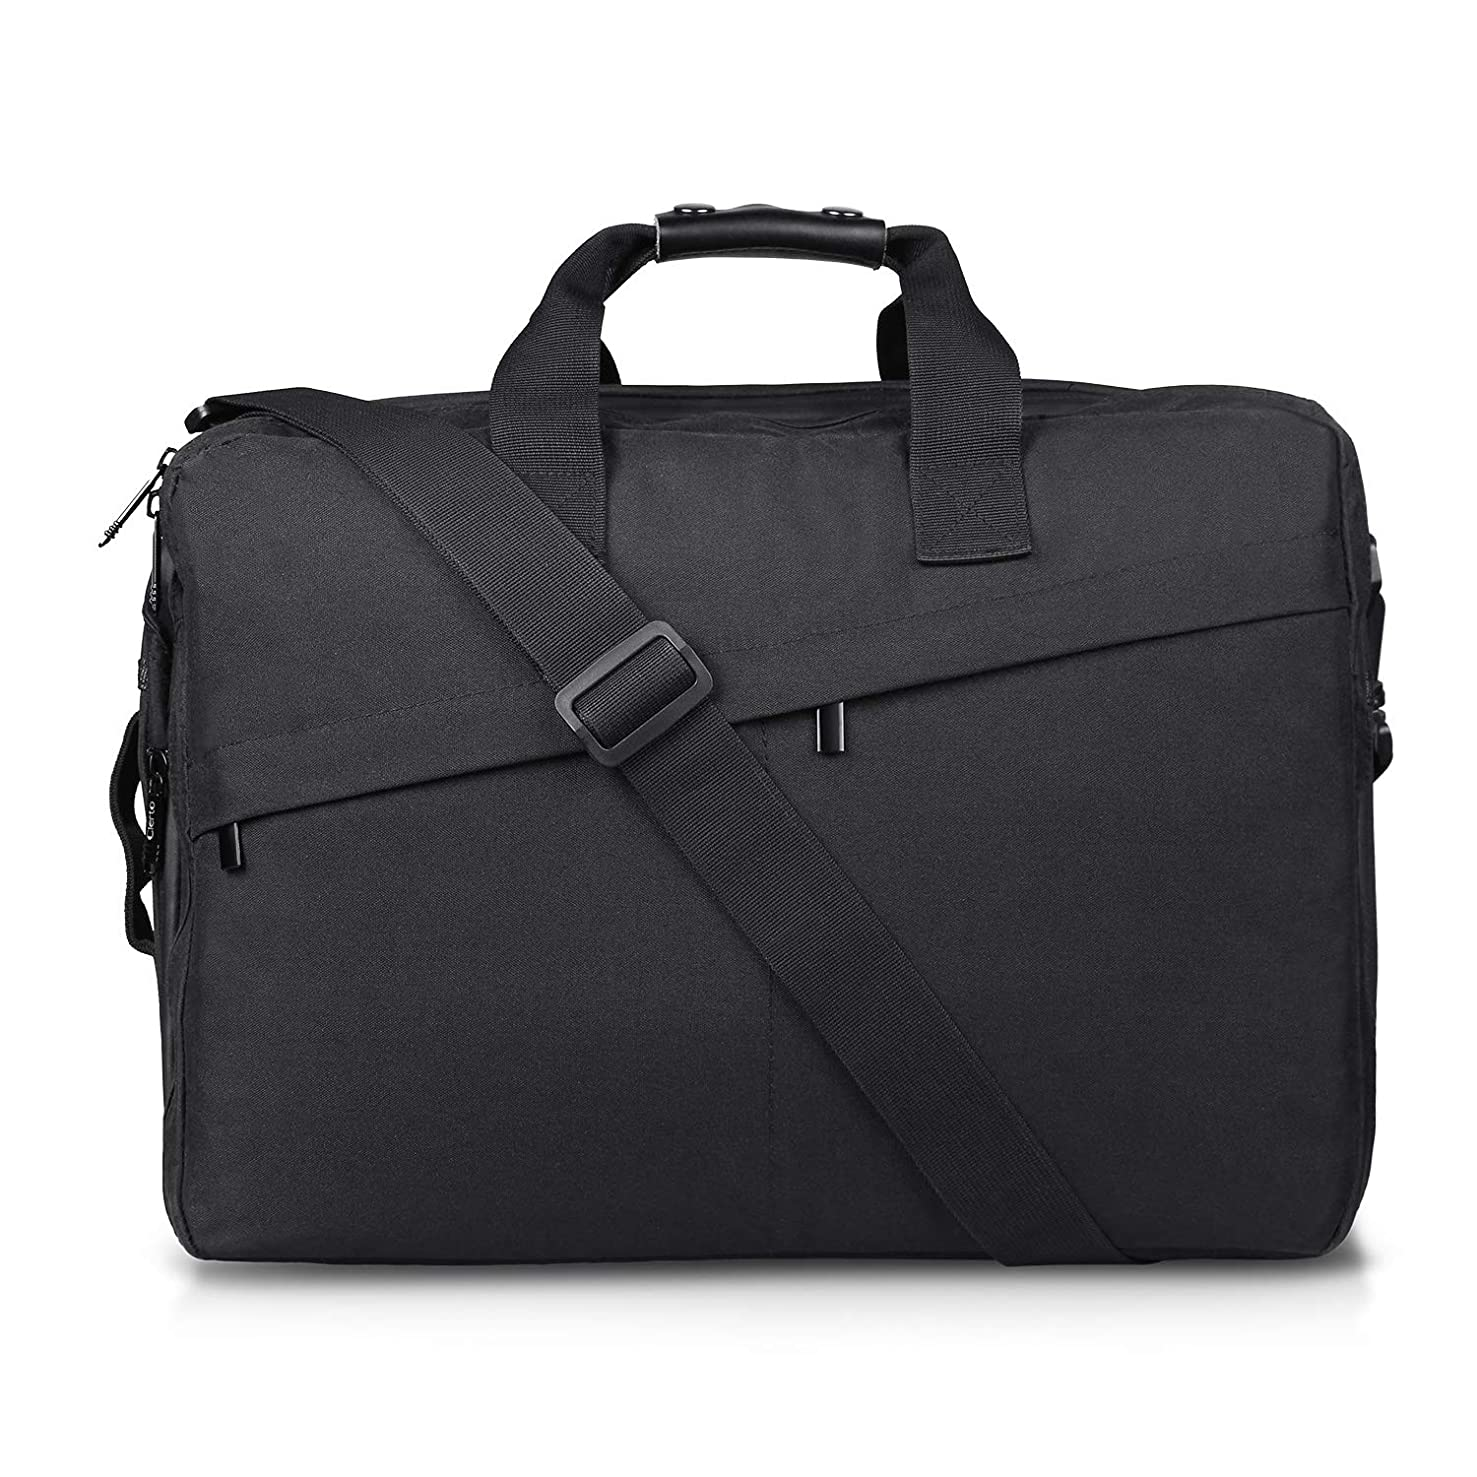 Cierto Laptop Bag Business Briefcase for Men 15.6 Inch, Large Expandable Compartment & Removable Shoulder Strap with Water Resistant Materials